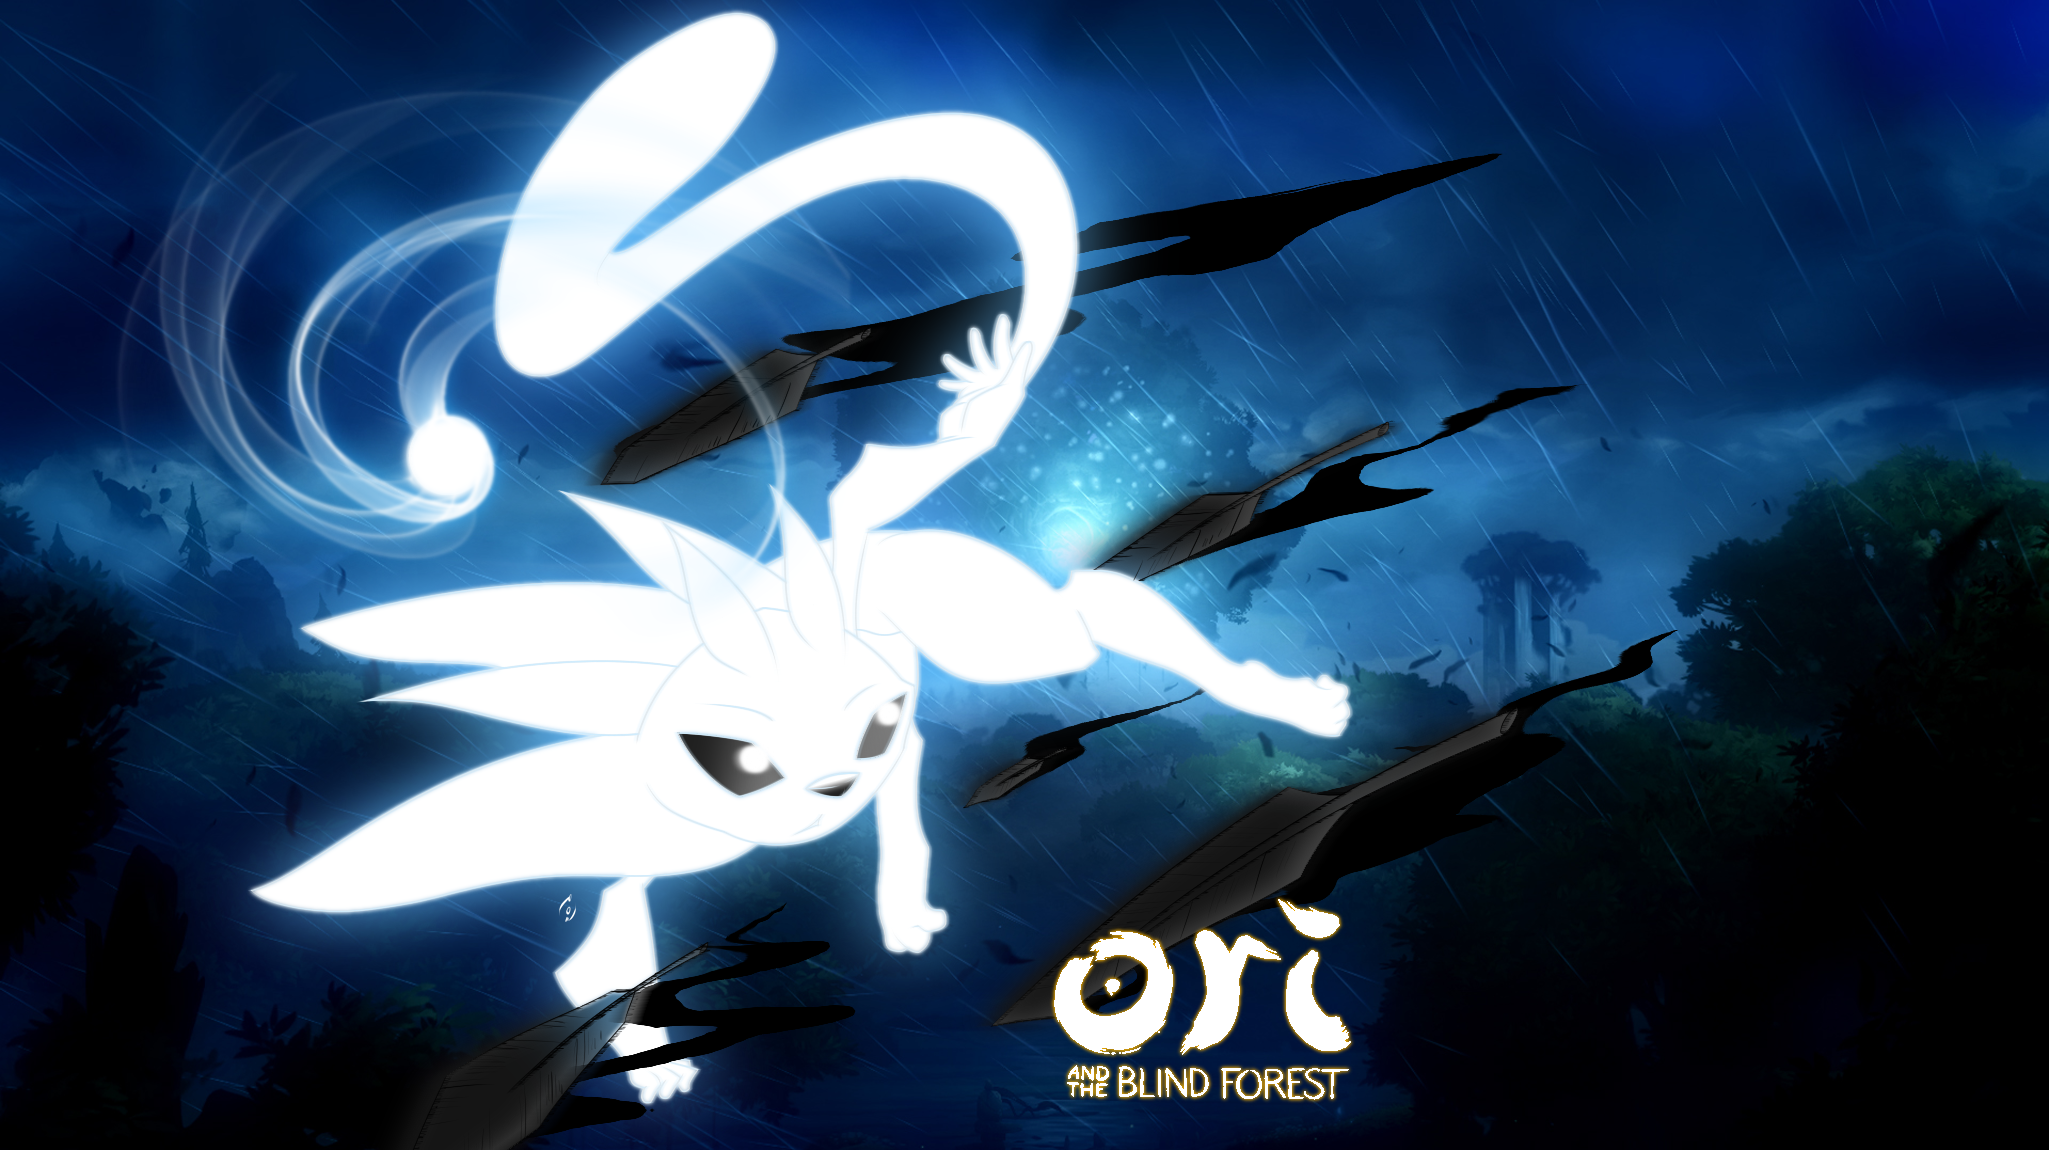 Ori And The Blind Forest By Akaonic On Deviantart Forest Wallpaper Wallpaper Adventure Rpg